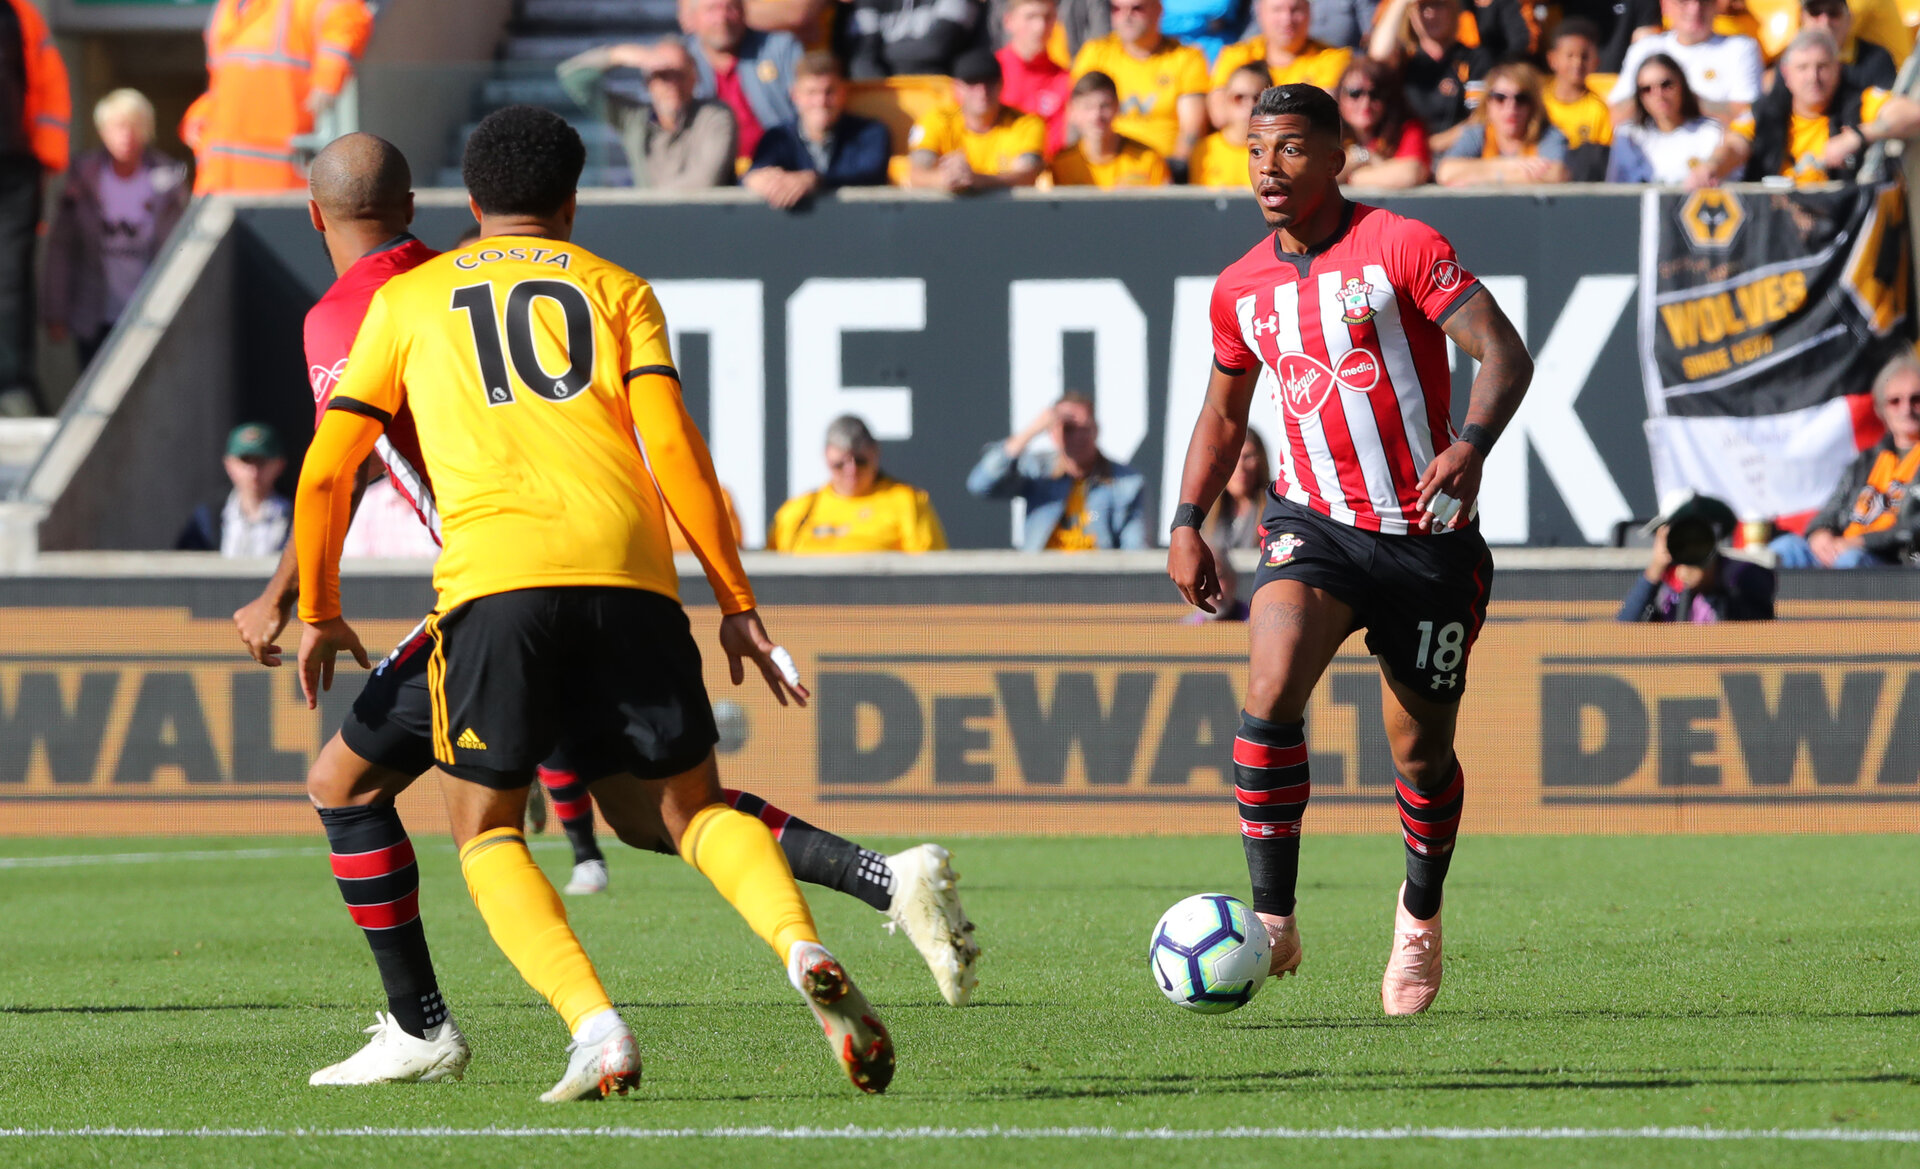 WOLVERHAMPTON, ENGLAND - SEPTEMBER 29: Mario Lemina of Southampton during the Premier League match between Wolverhampton Wanderers and Southampton FC at Molineux on September 29, 2018 in Wolverhampton, United Kingdom. (Photo by Matt Watson/Southampton FC via Getty Images)